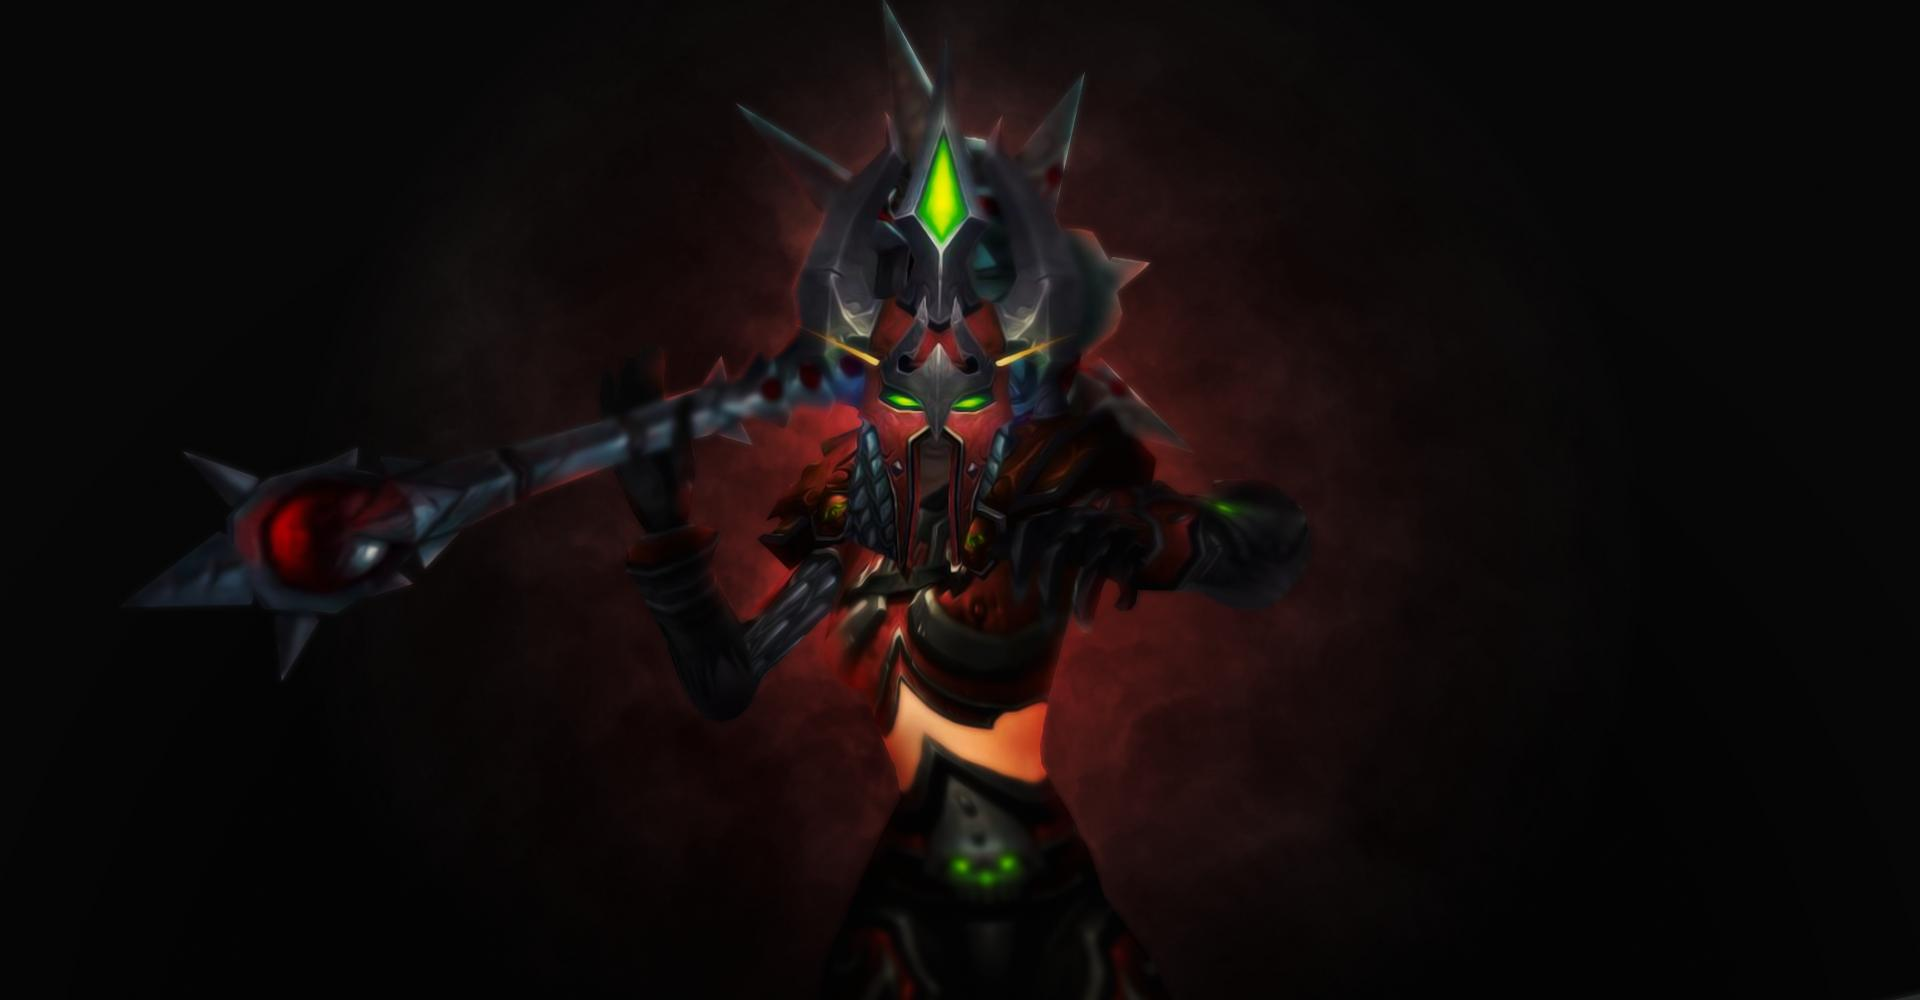 Blood Death Knight Pve Guide Wow Bfa 8 2 Classes Overgear Com